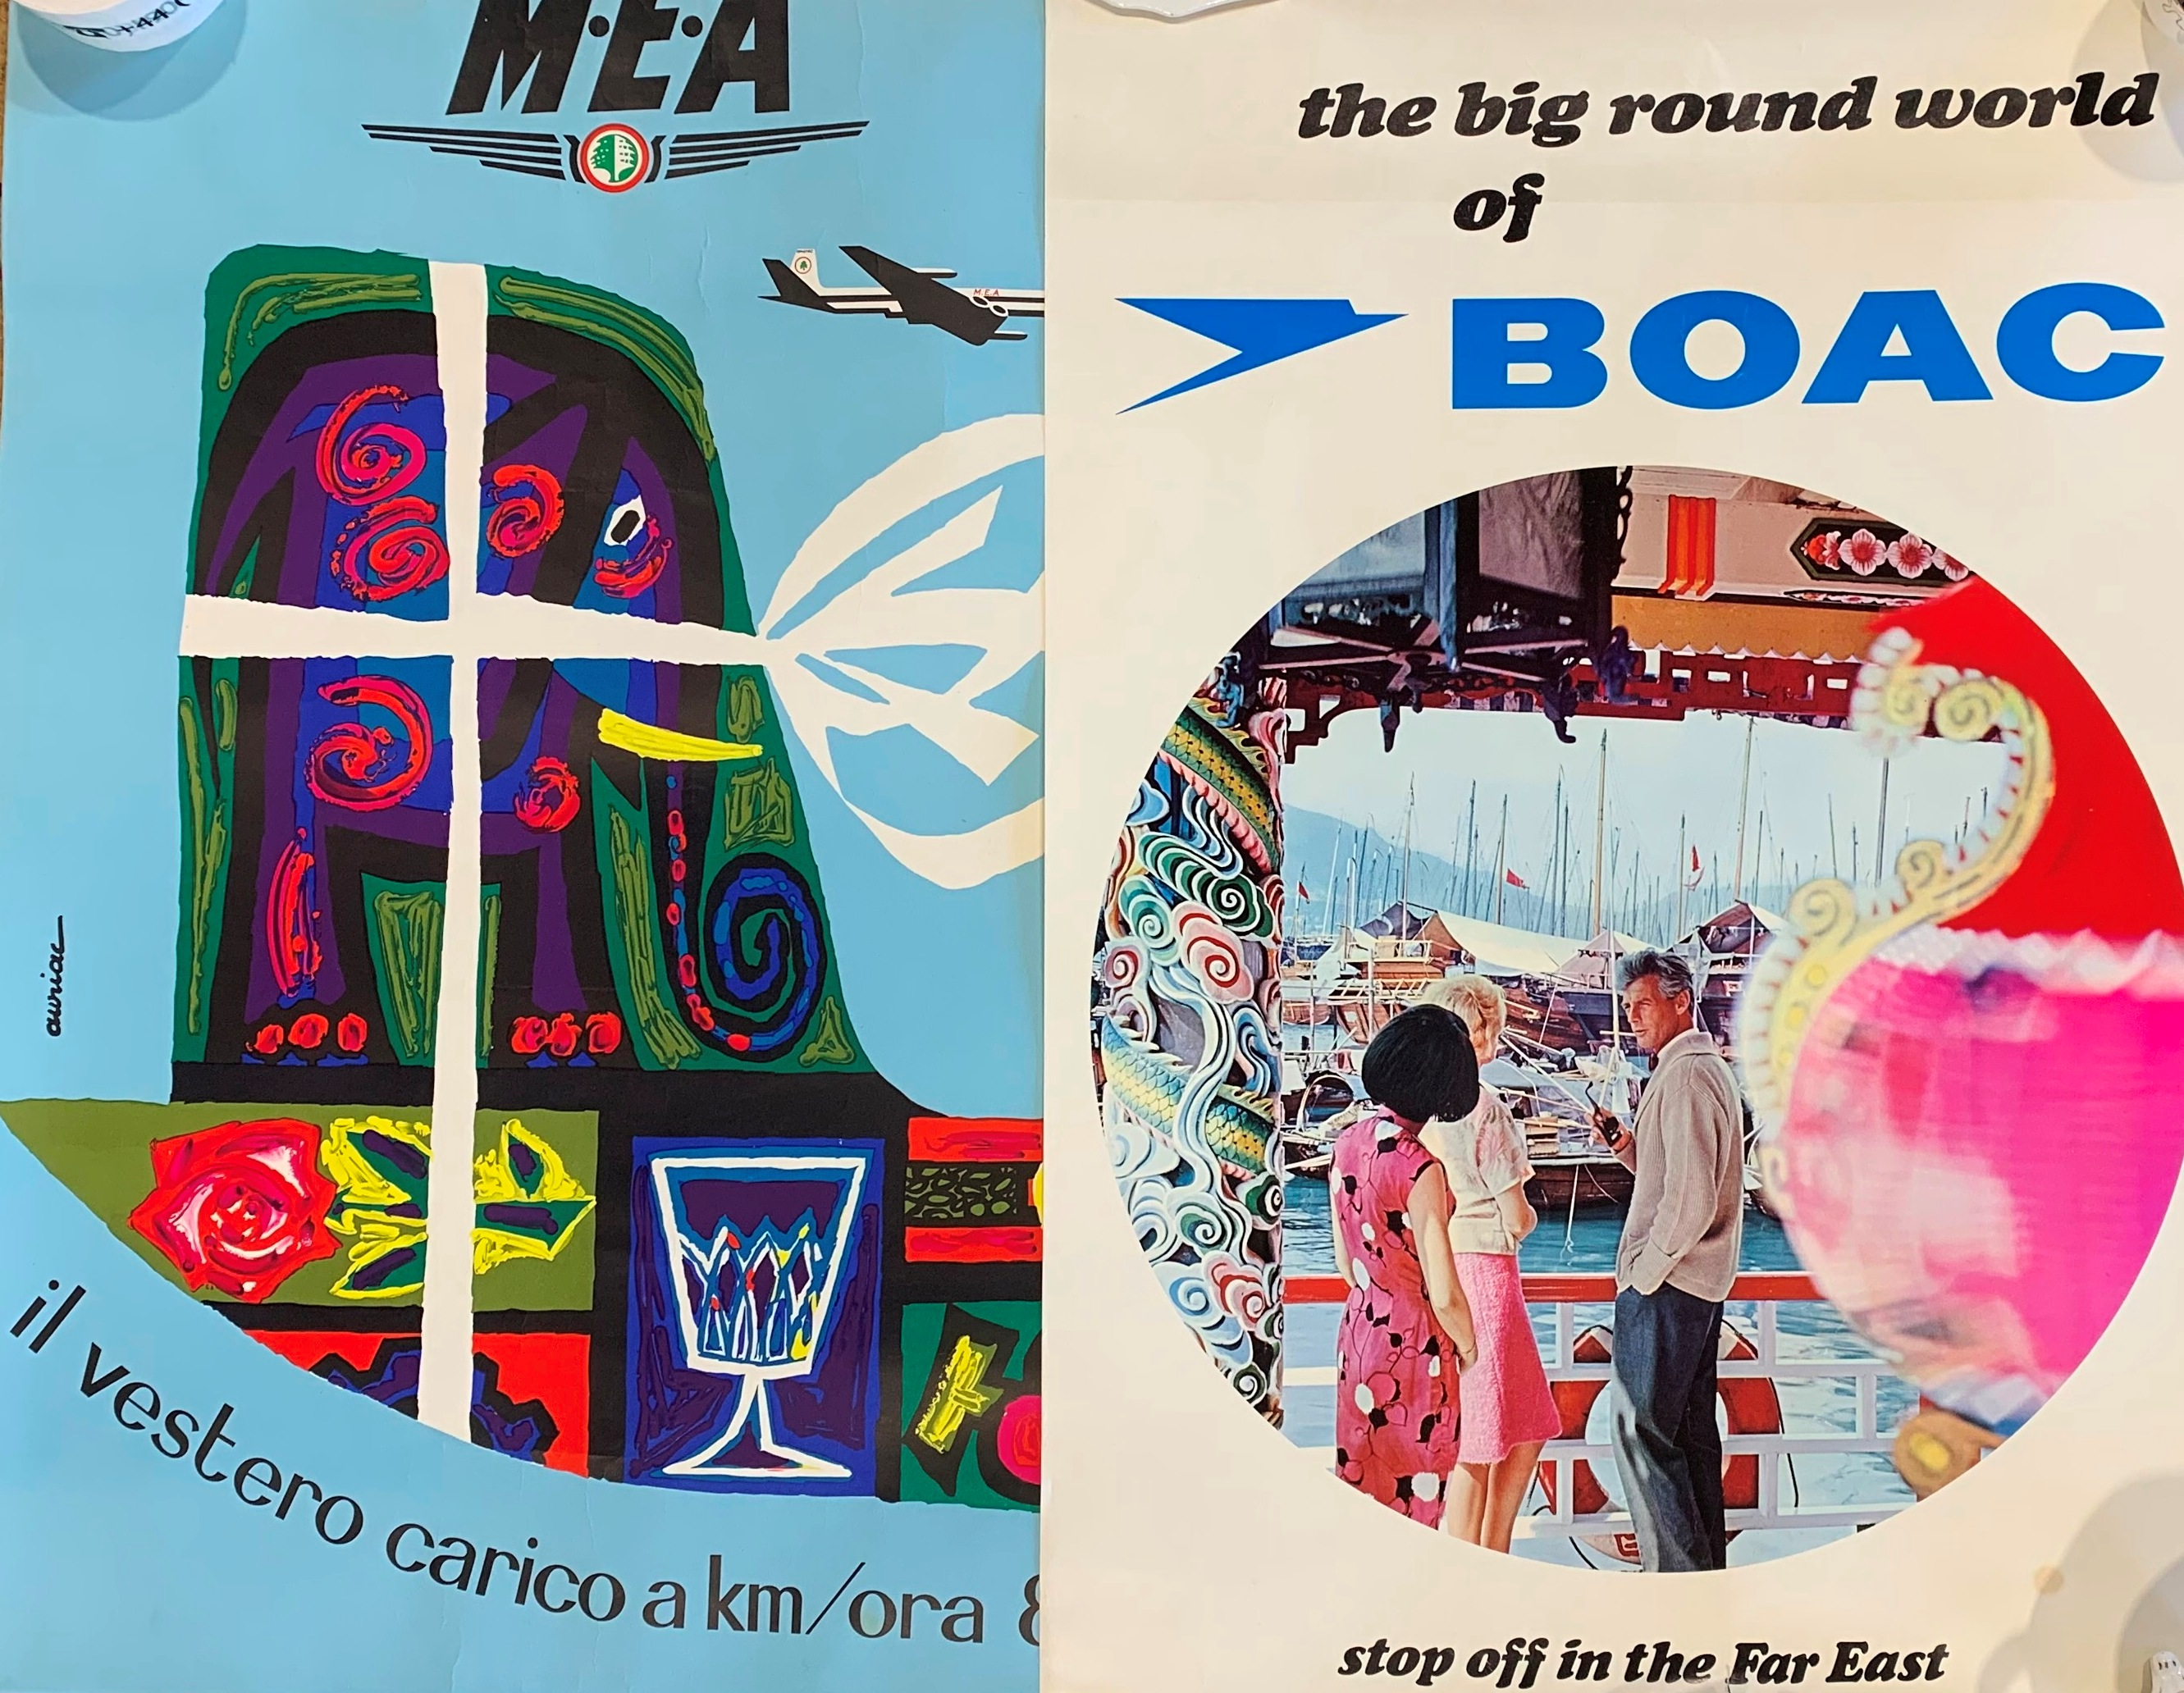 Collection of Vintage Airline Advertising Posters (1960s - 1970s) Max 102cm x 69cm (6) - Image 2 of 2